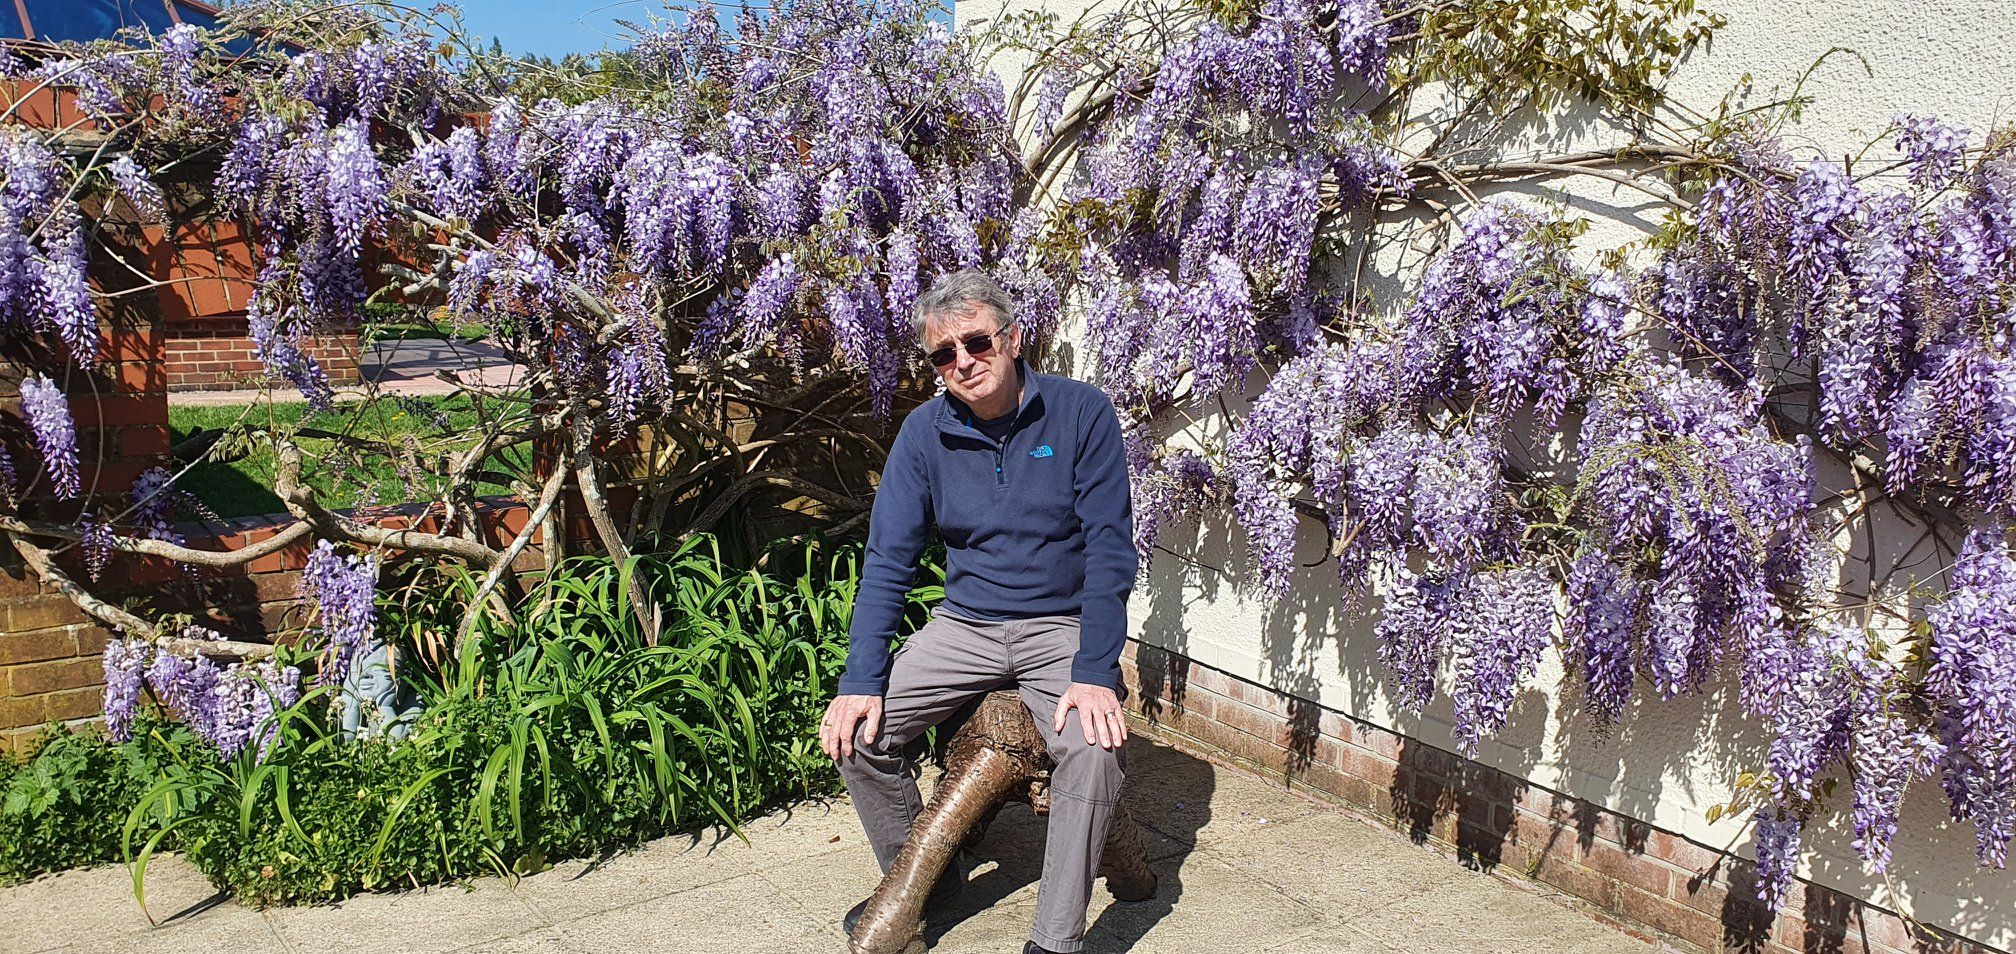 Ronny Allan:  Living with Neuroendocrine Cancer during COVID-19 restrictions 4 – A story of bikes, ponies, wisteria and Vitamin D